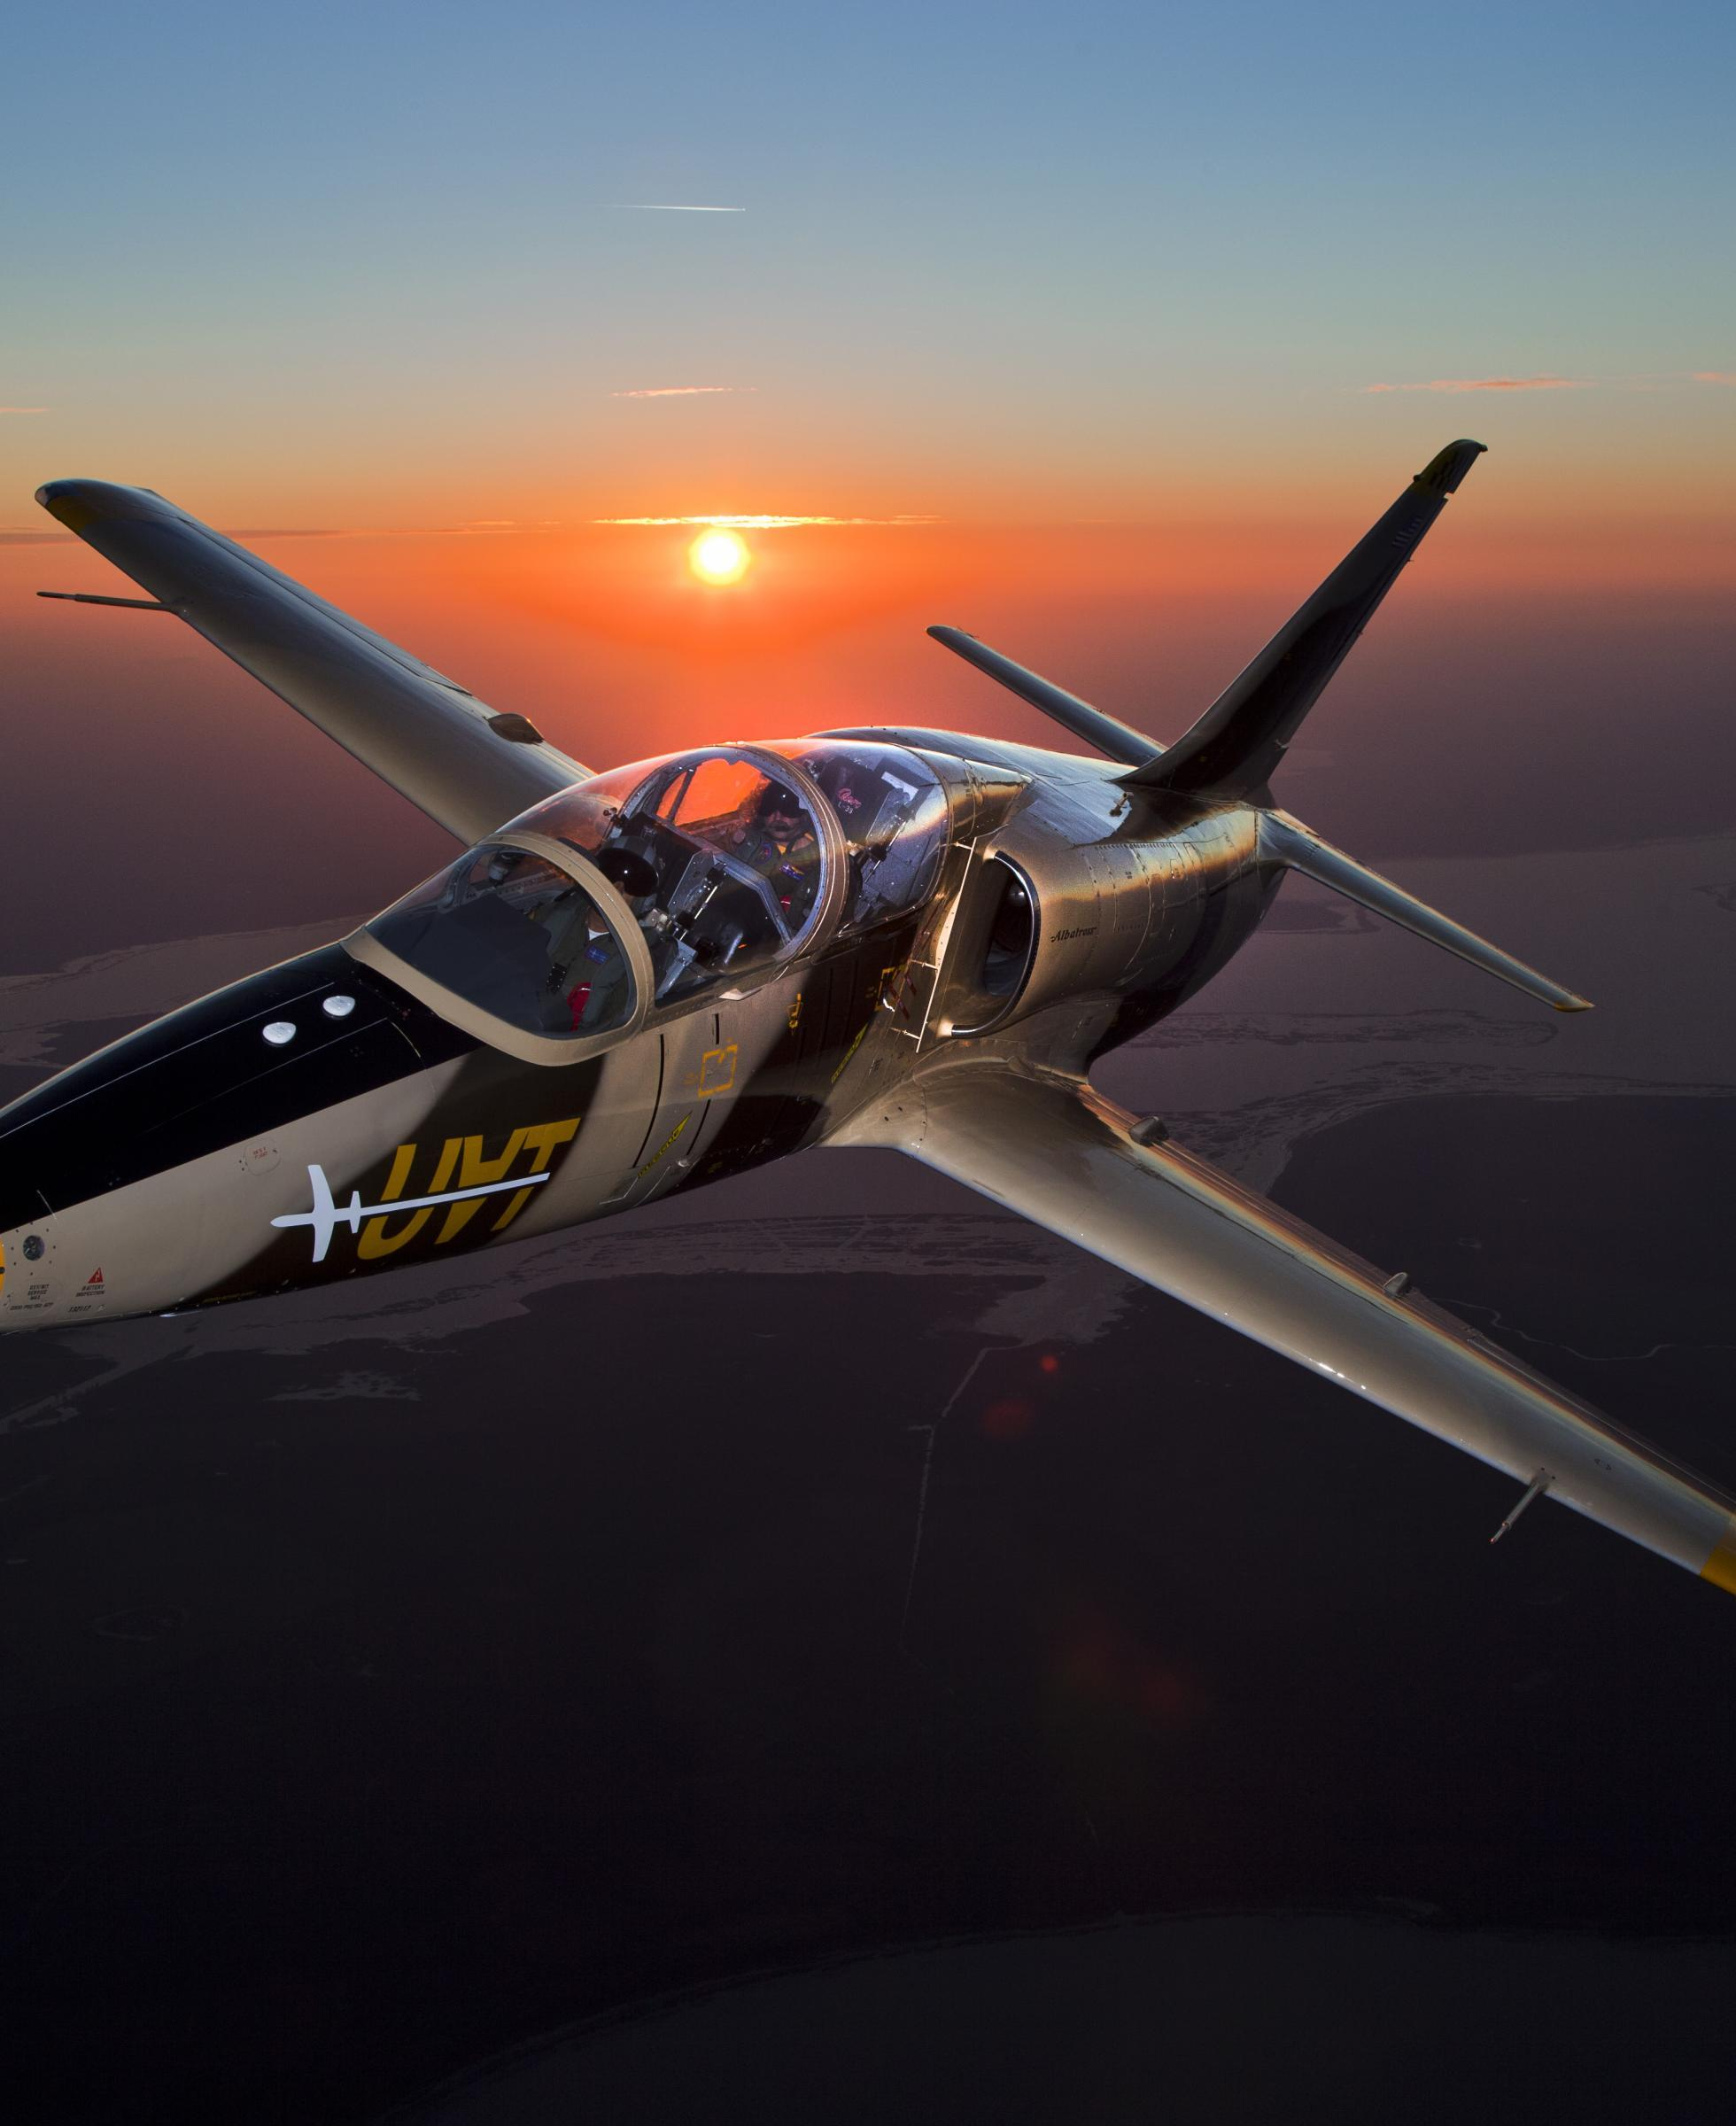 Jet fighter at Sunset